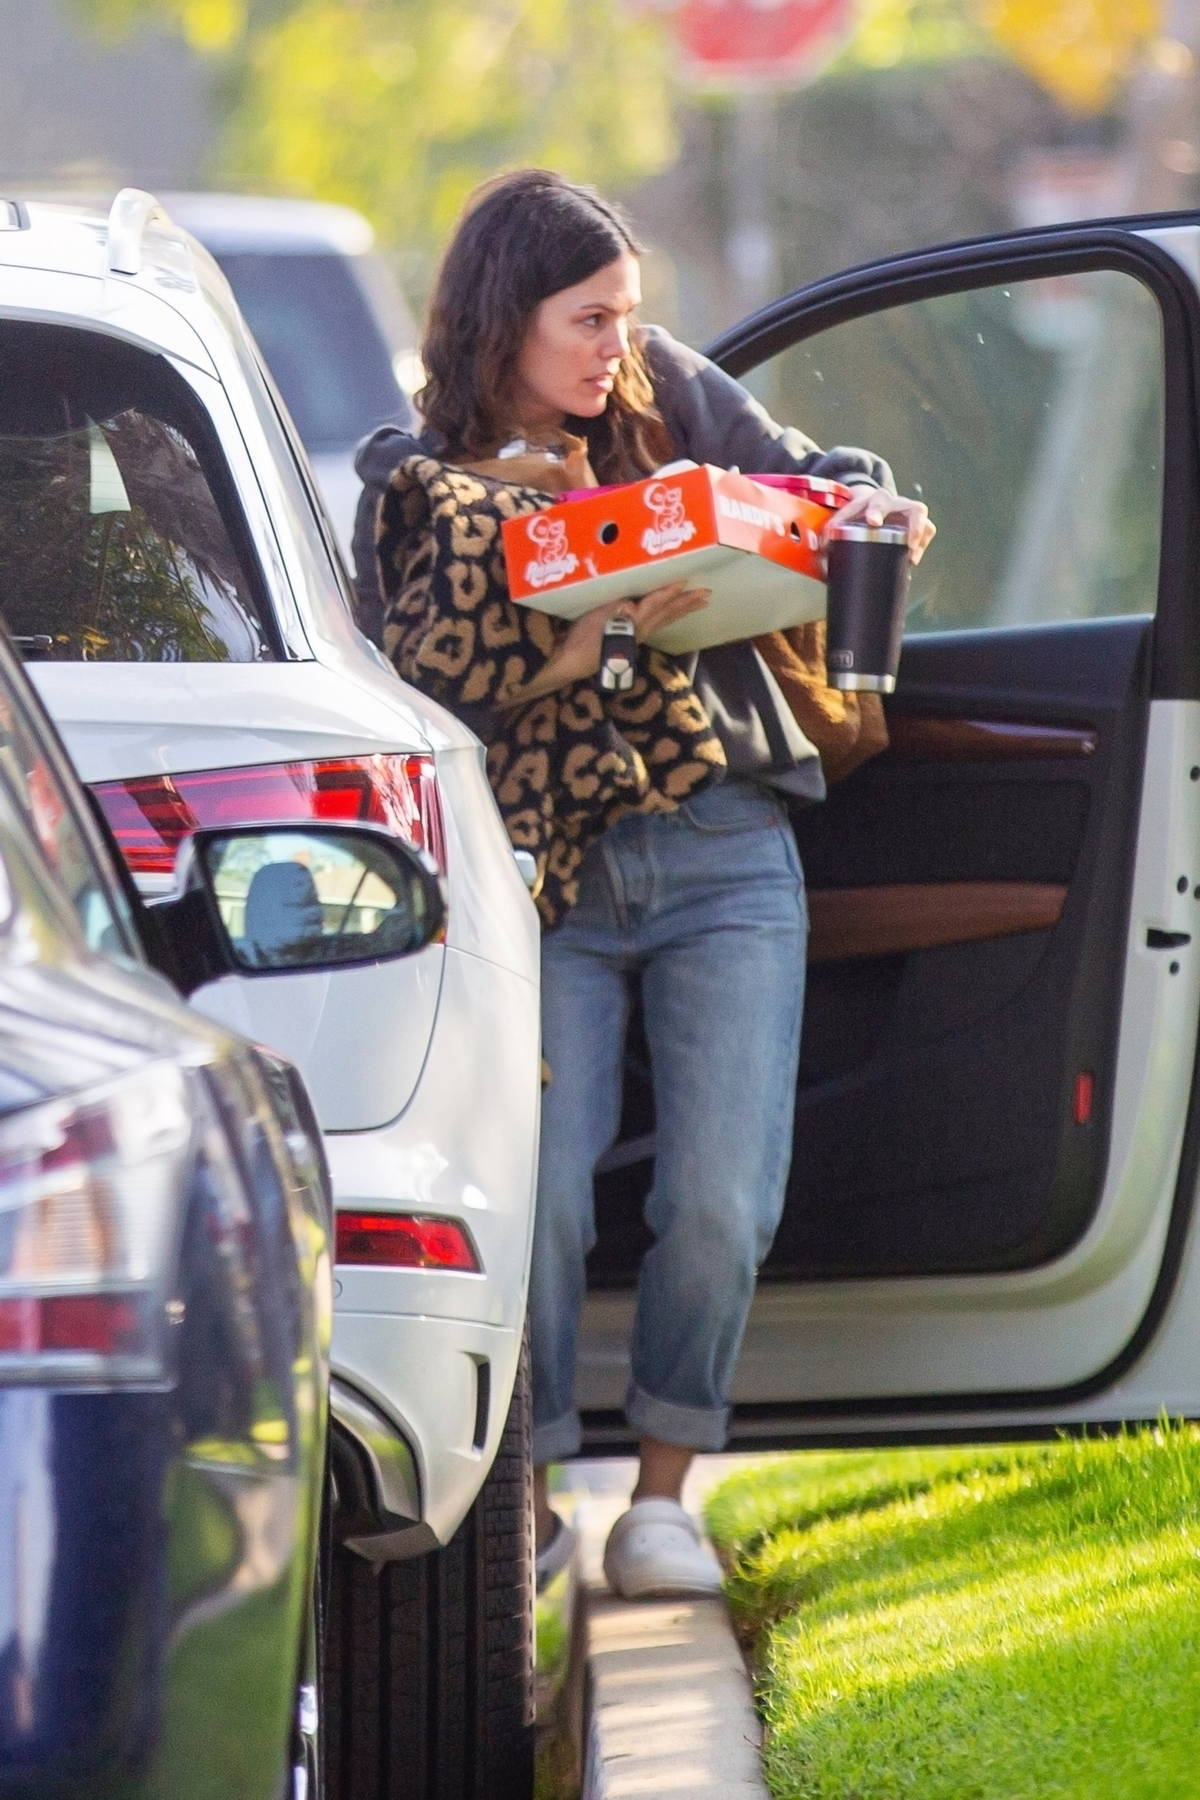 Rachel Bilson has her hands full while arriving at a Super Bowl party with a box from Randy's Donuts in Los Angeles